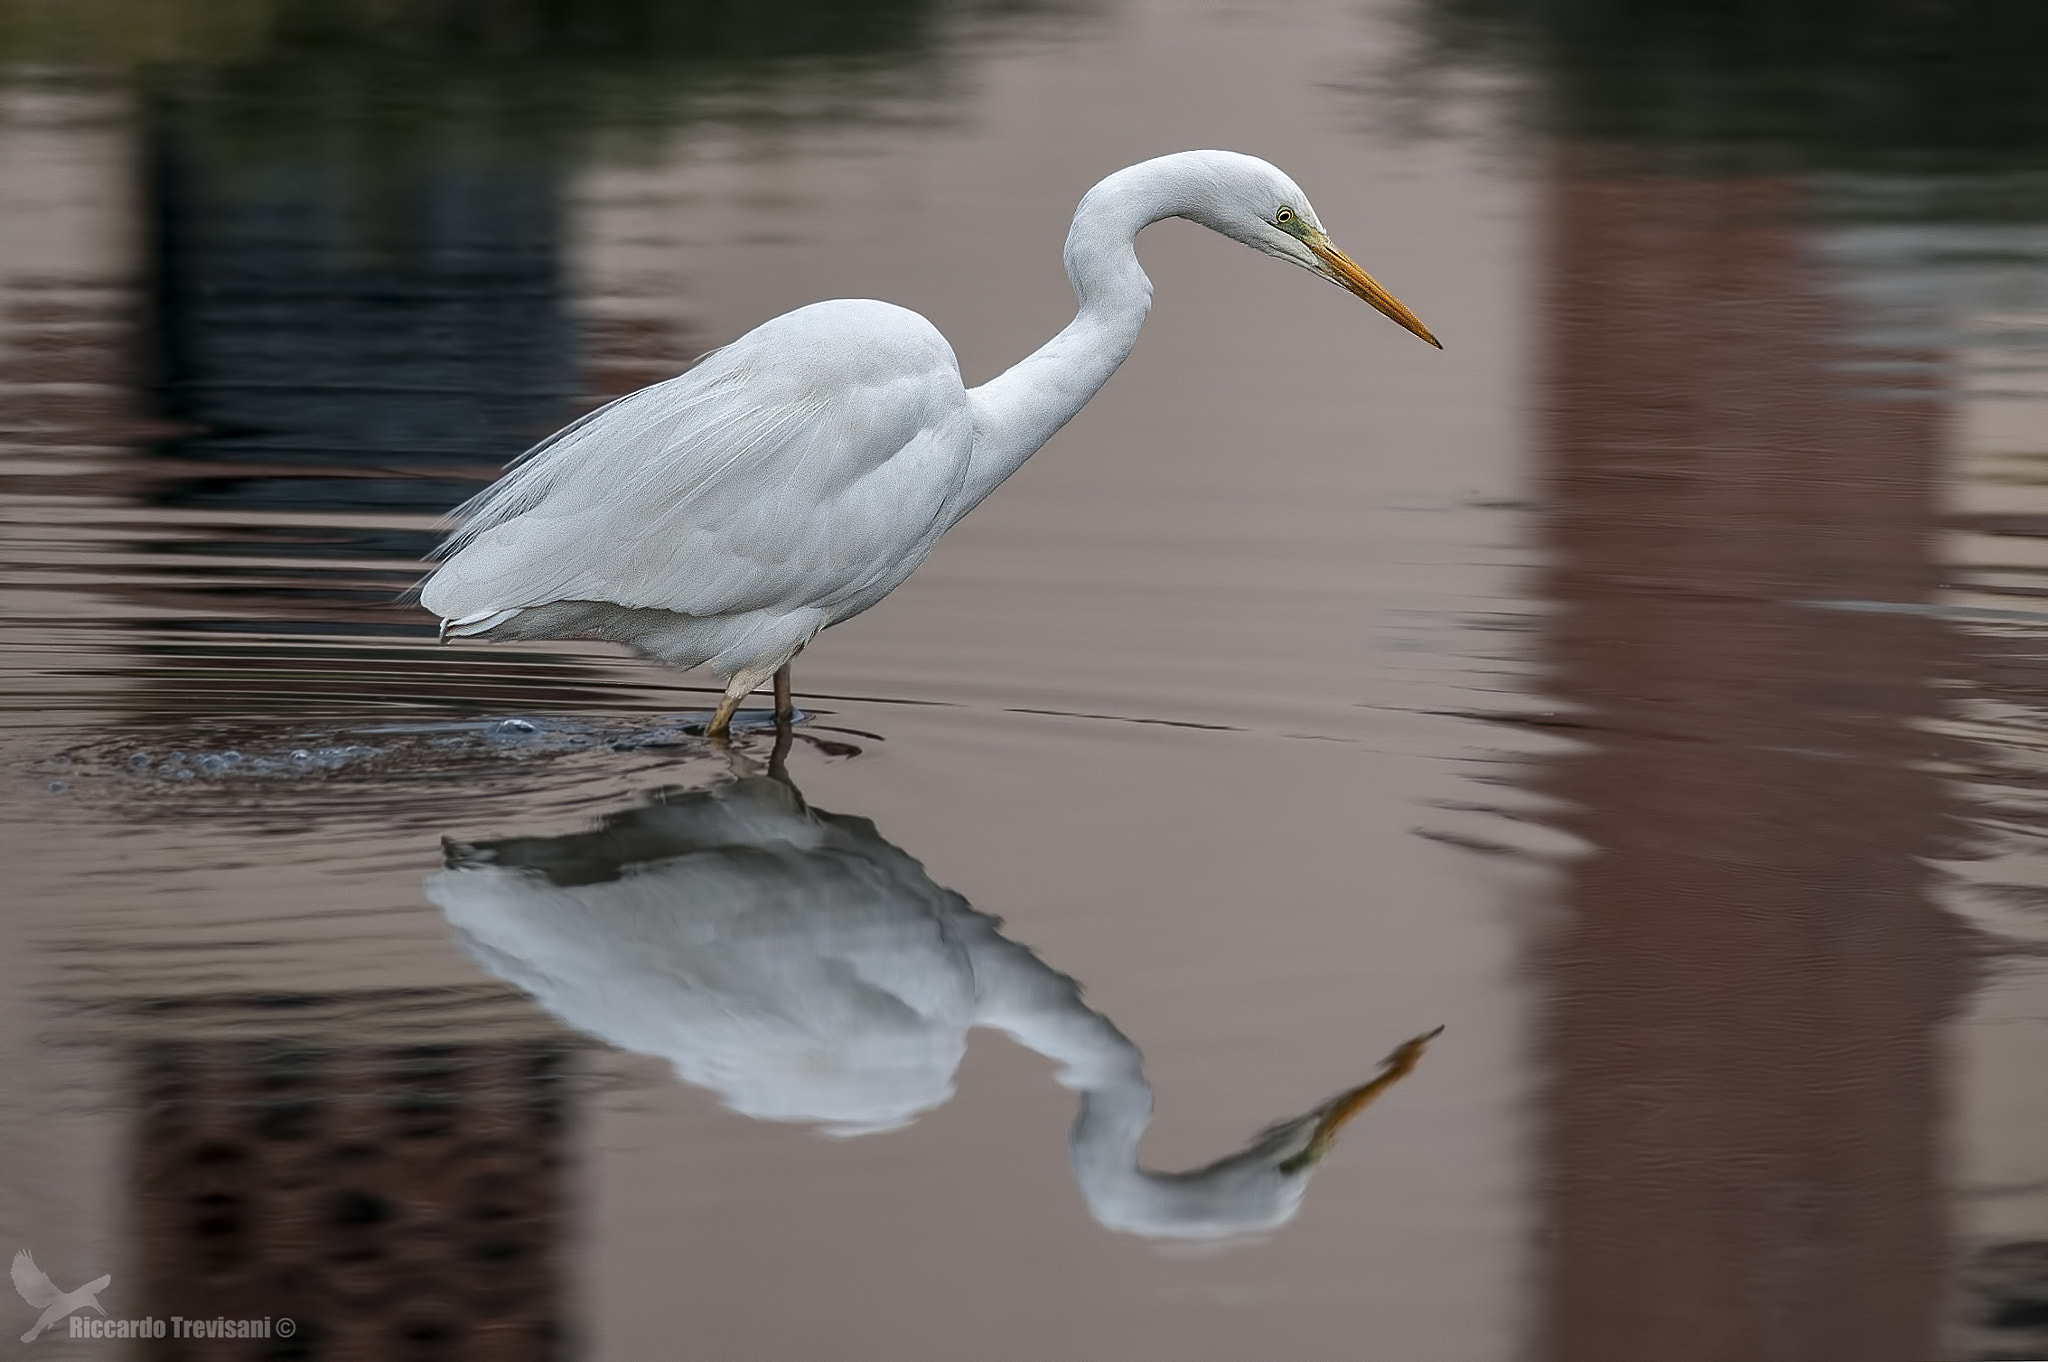 Photograph White reflections by Riccardo Trevisani on 500px